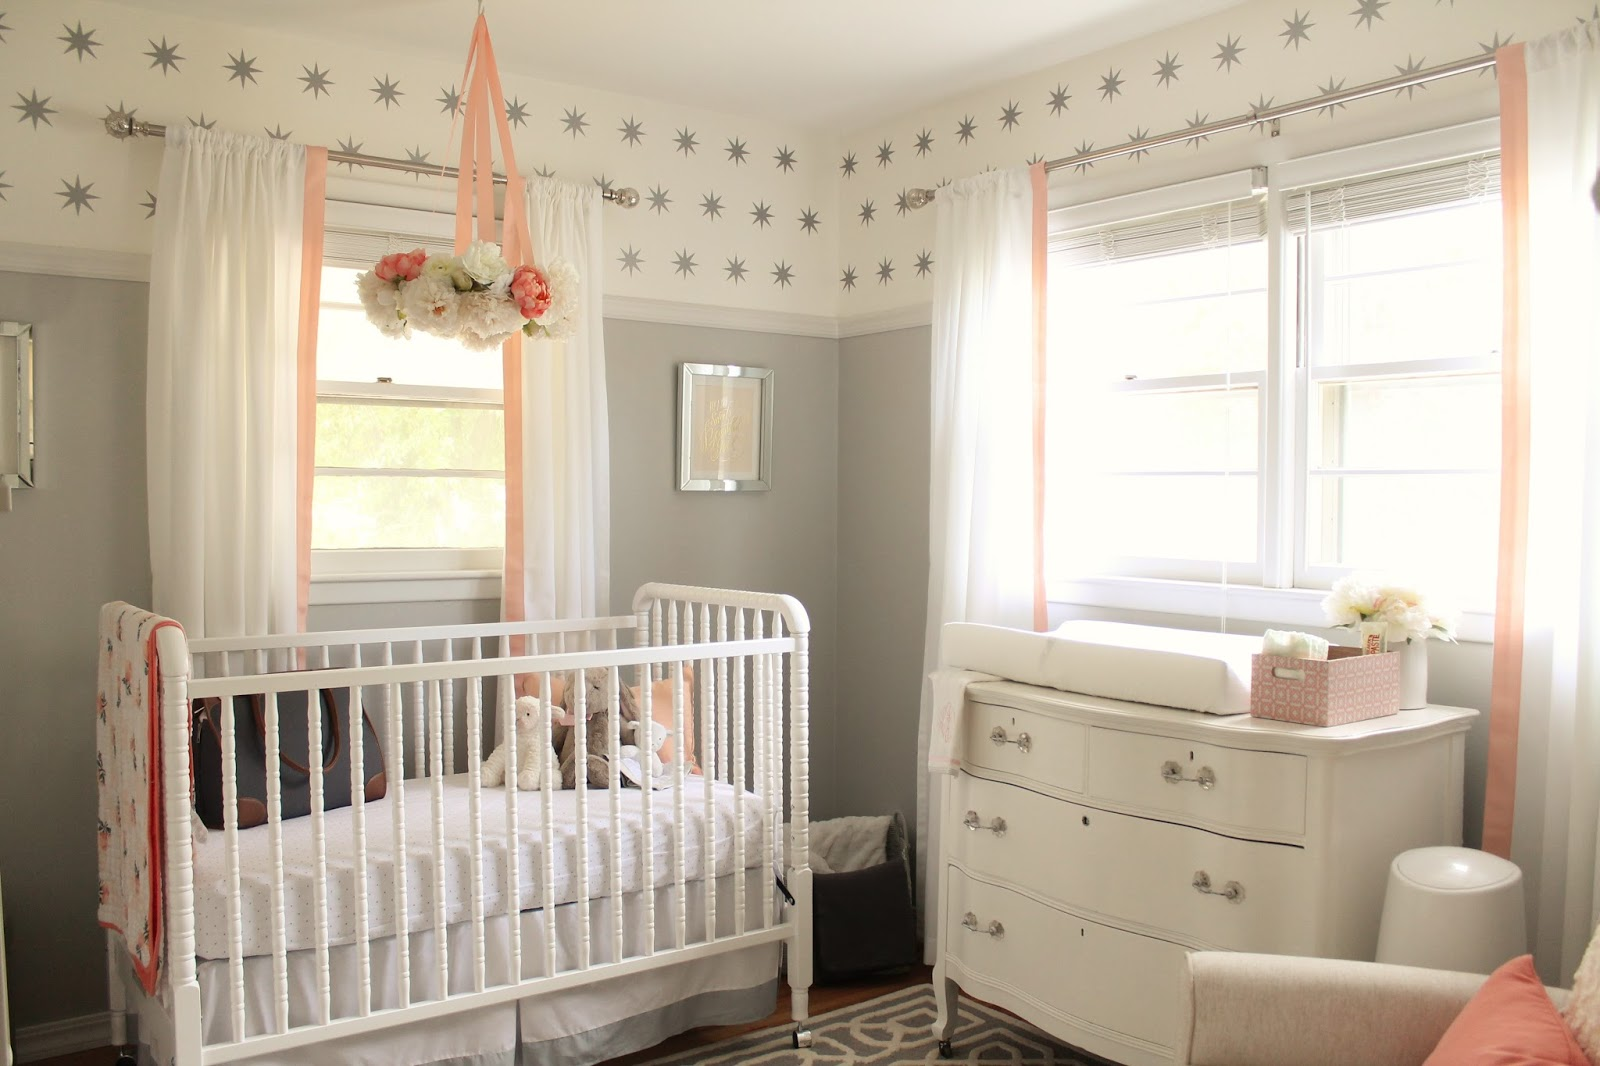 I Had So Much Fun Putting This Space Together Have Known Even Before We Were Planning To Kids Exactly What Would Do For A Little Girls Nursery